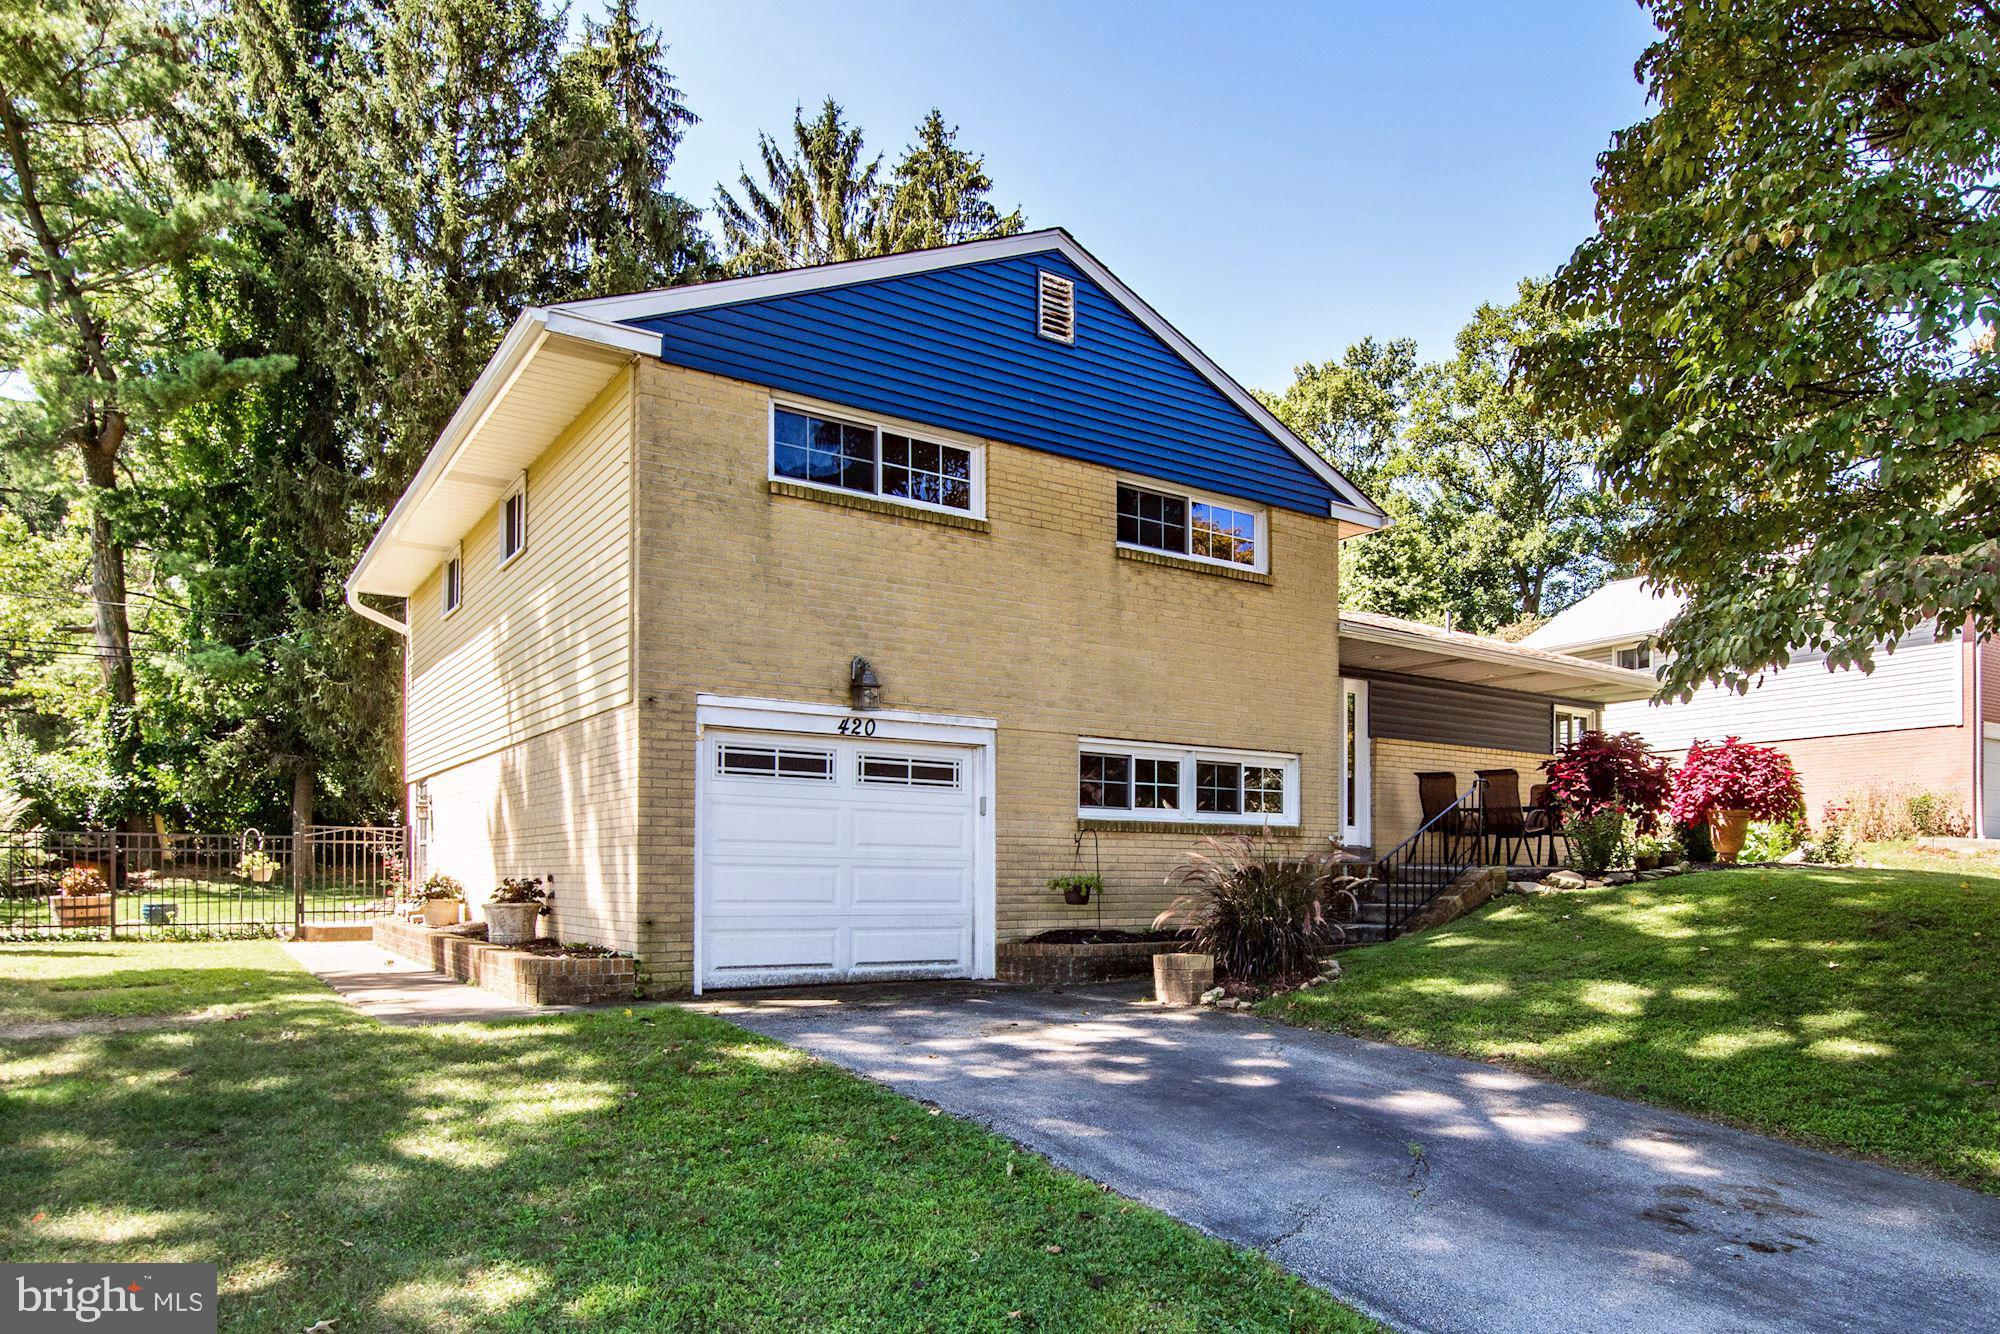 420 FOSTER DRIVE, SPRINGFIELD, PA 19064